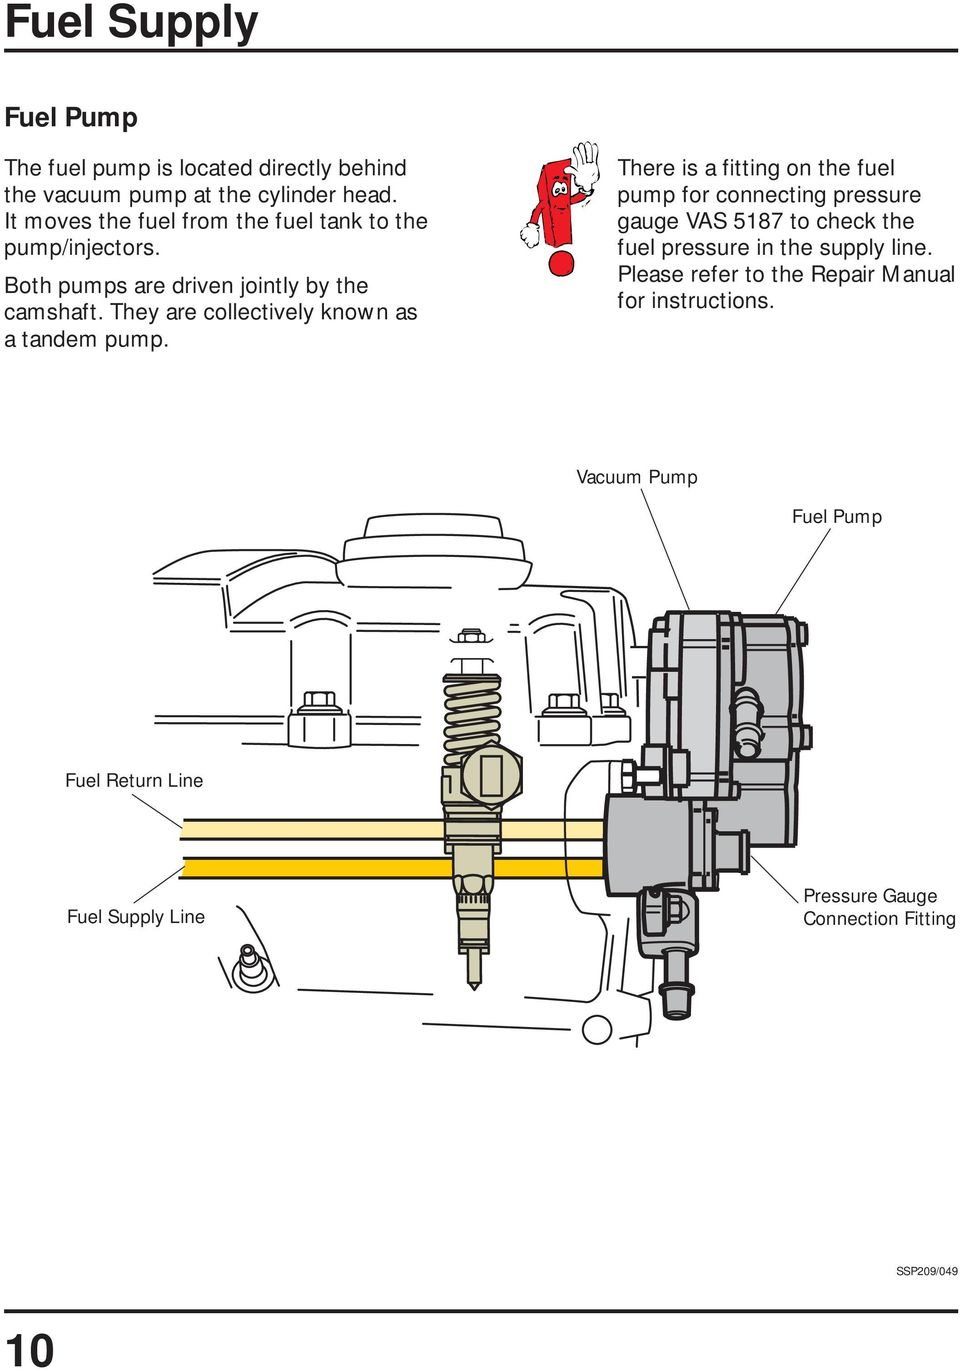 19 Liter Tdi Engine With Pump Injection Pumpe Dse Design And Renault Fuel Pressure Diagram They Are Collectively Known As A Tandem